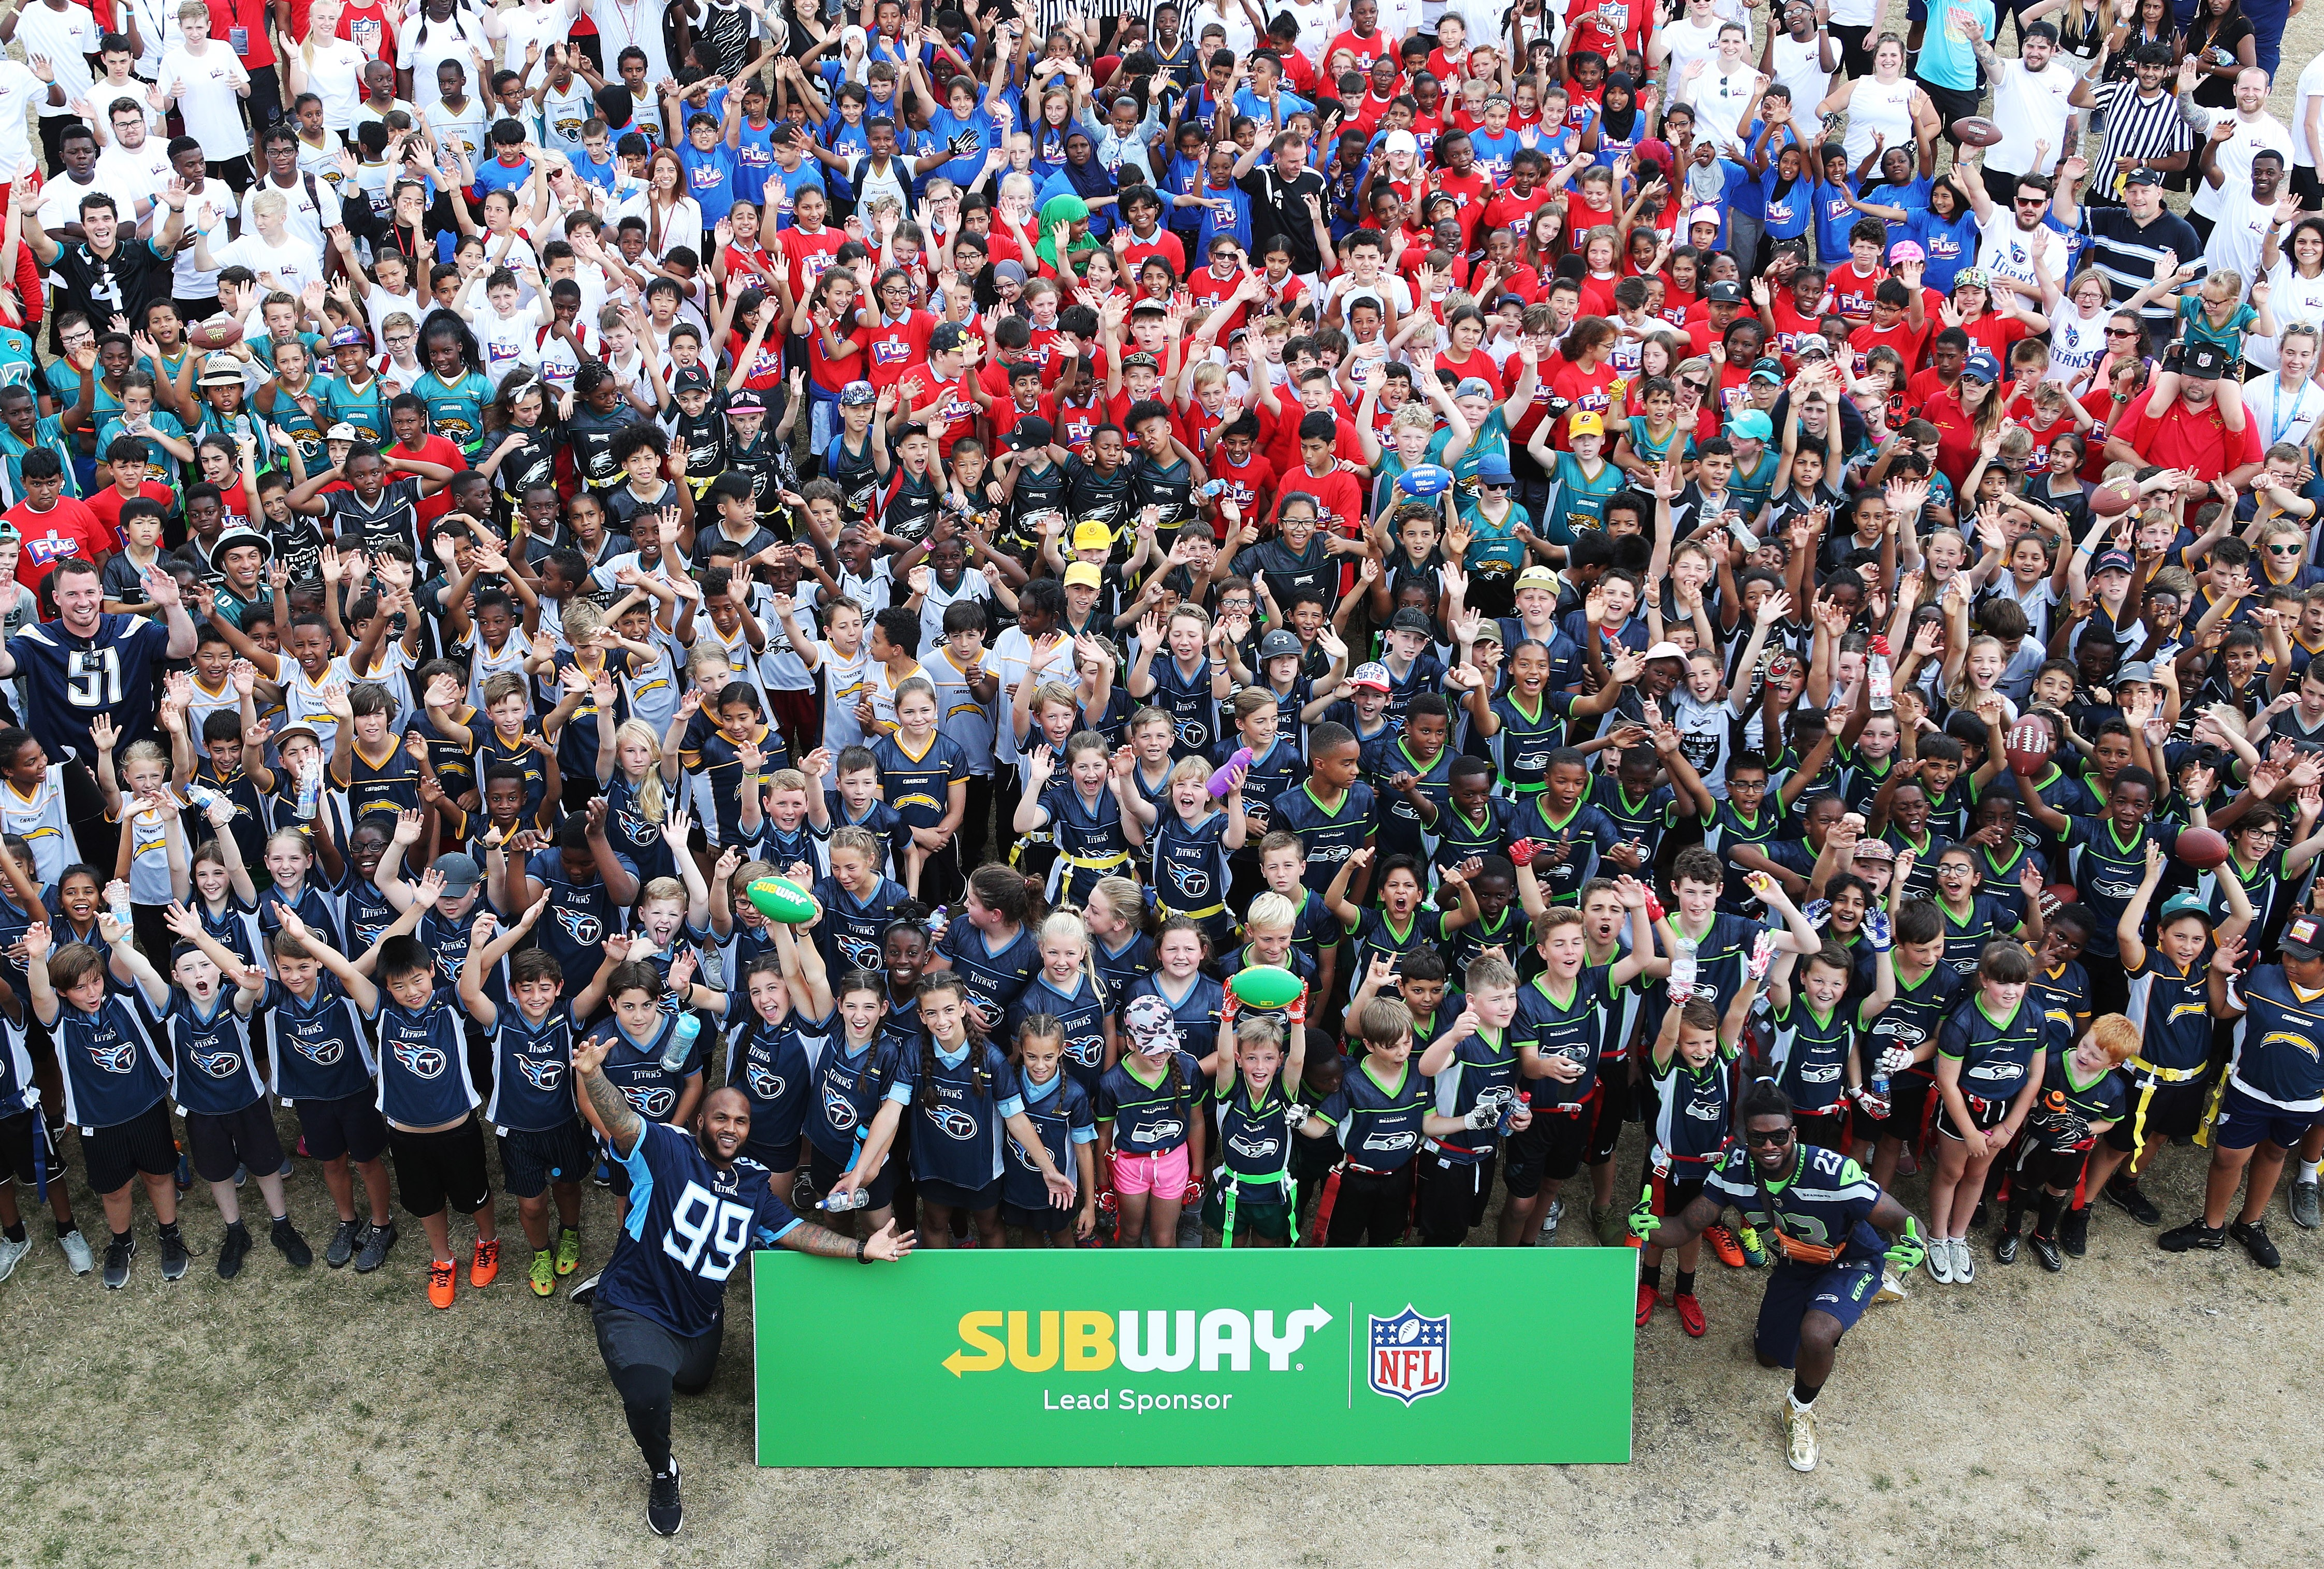 FREE FOR EDITORIAL USE - NFL London Games players Jurrell Casey (TENNESSEE TITANS) and Neiko Thorpe (SEATTLE SEAHAWKS) pictured at the NFL Flag Summer Bowl finale, presented by Subway, celebrate the 2017-2018 tournaments, played by over 10,000 kids across the UK. Schools can register interest online at http://bit.ly/NFLFlagSubway